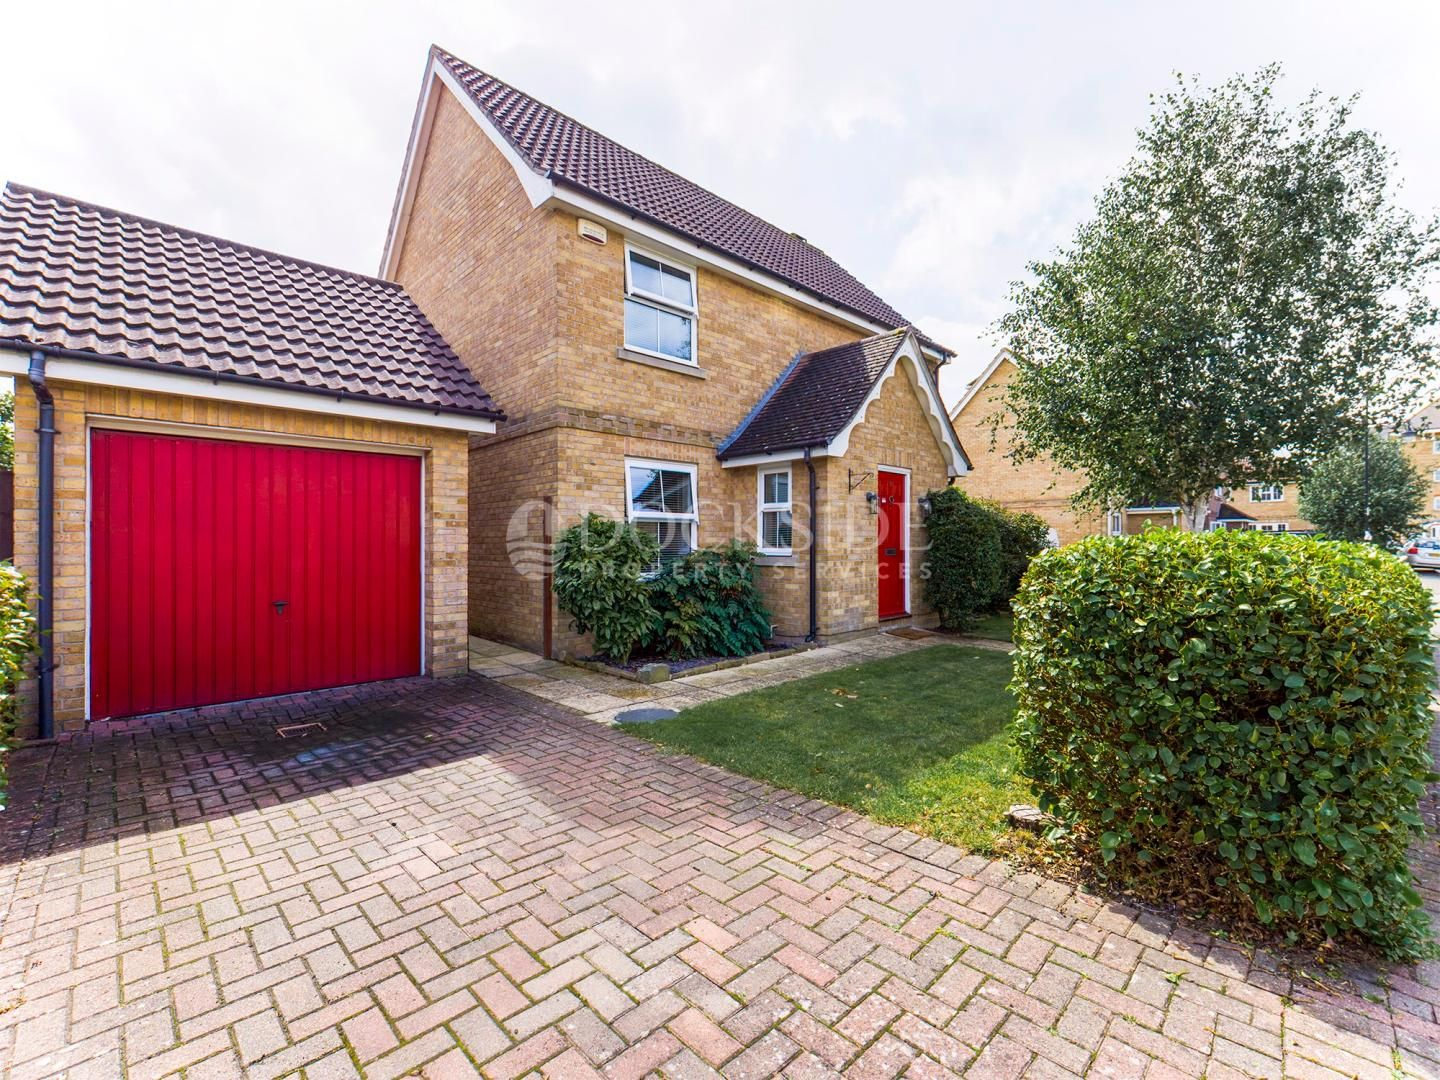 3 bed house for sale in Haven Way, ME4